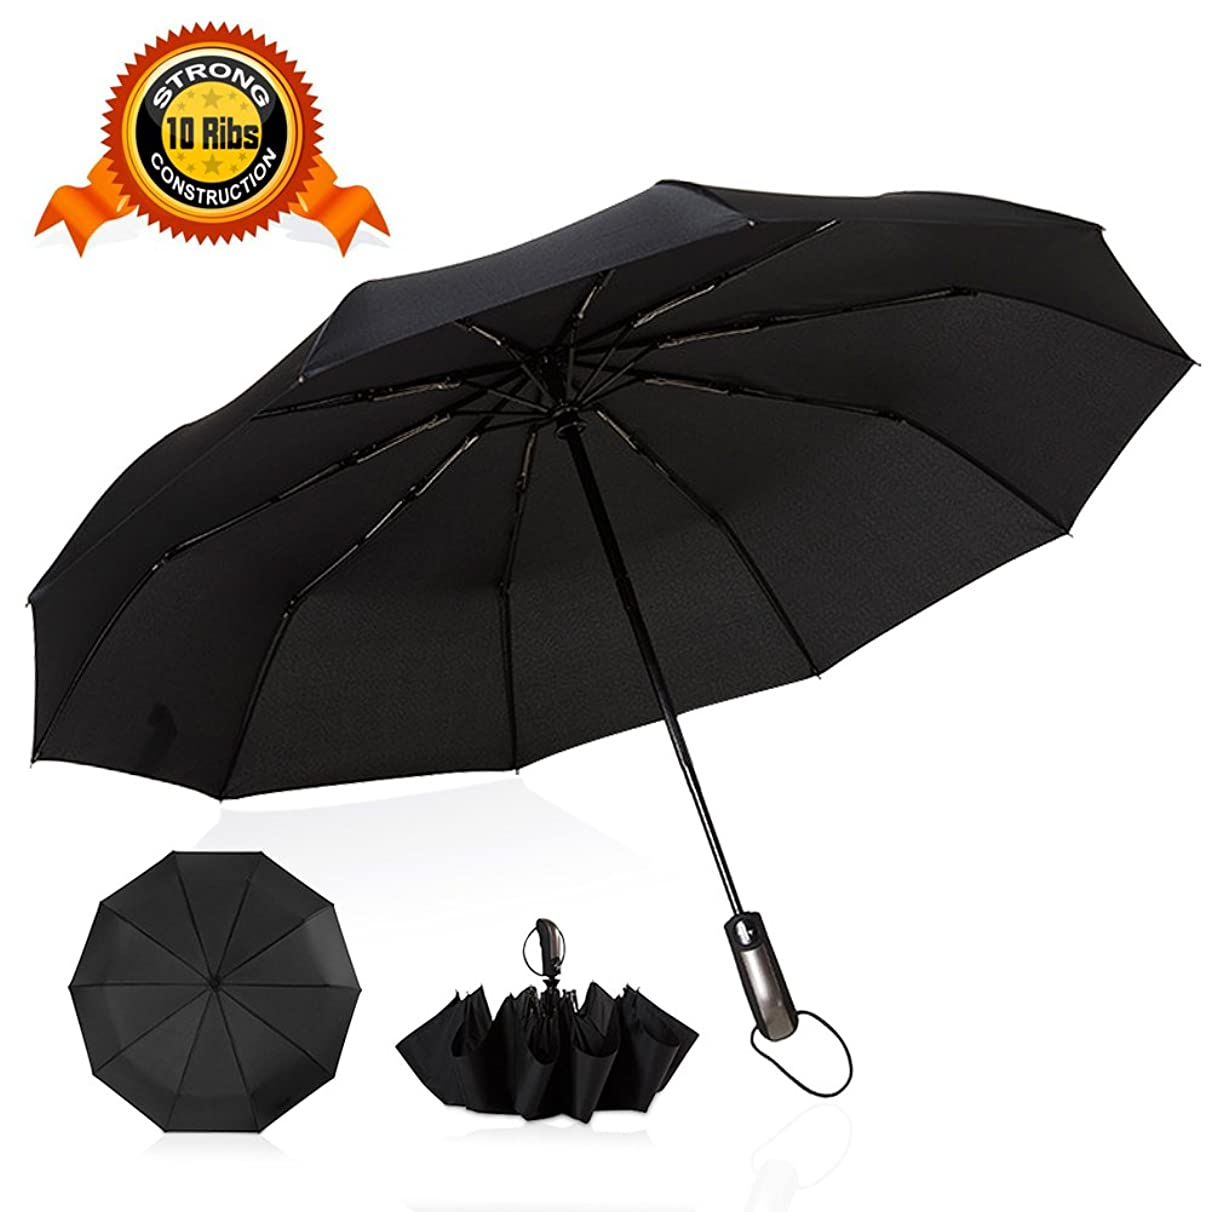 Bukm Travel Umbrella, Upgraded 10 Ribs Strong Construction Windproof Golf Umbrella, Compact Umbrella with Teflon Coating,Auto Open Close